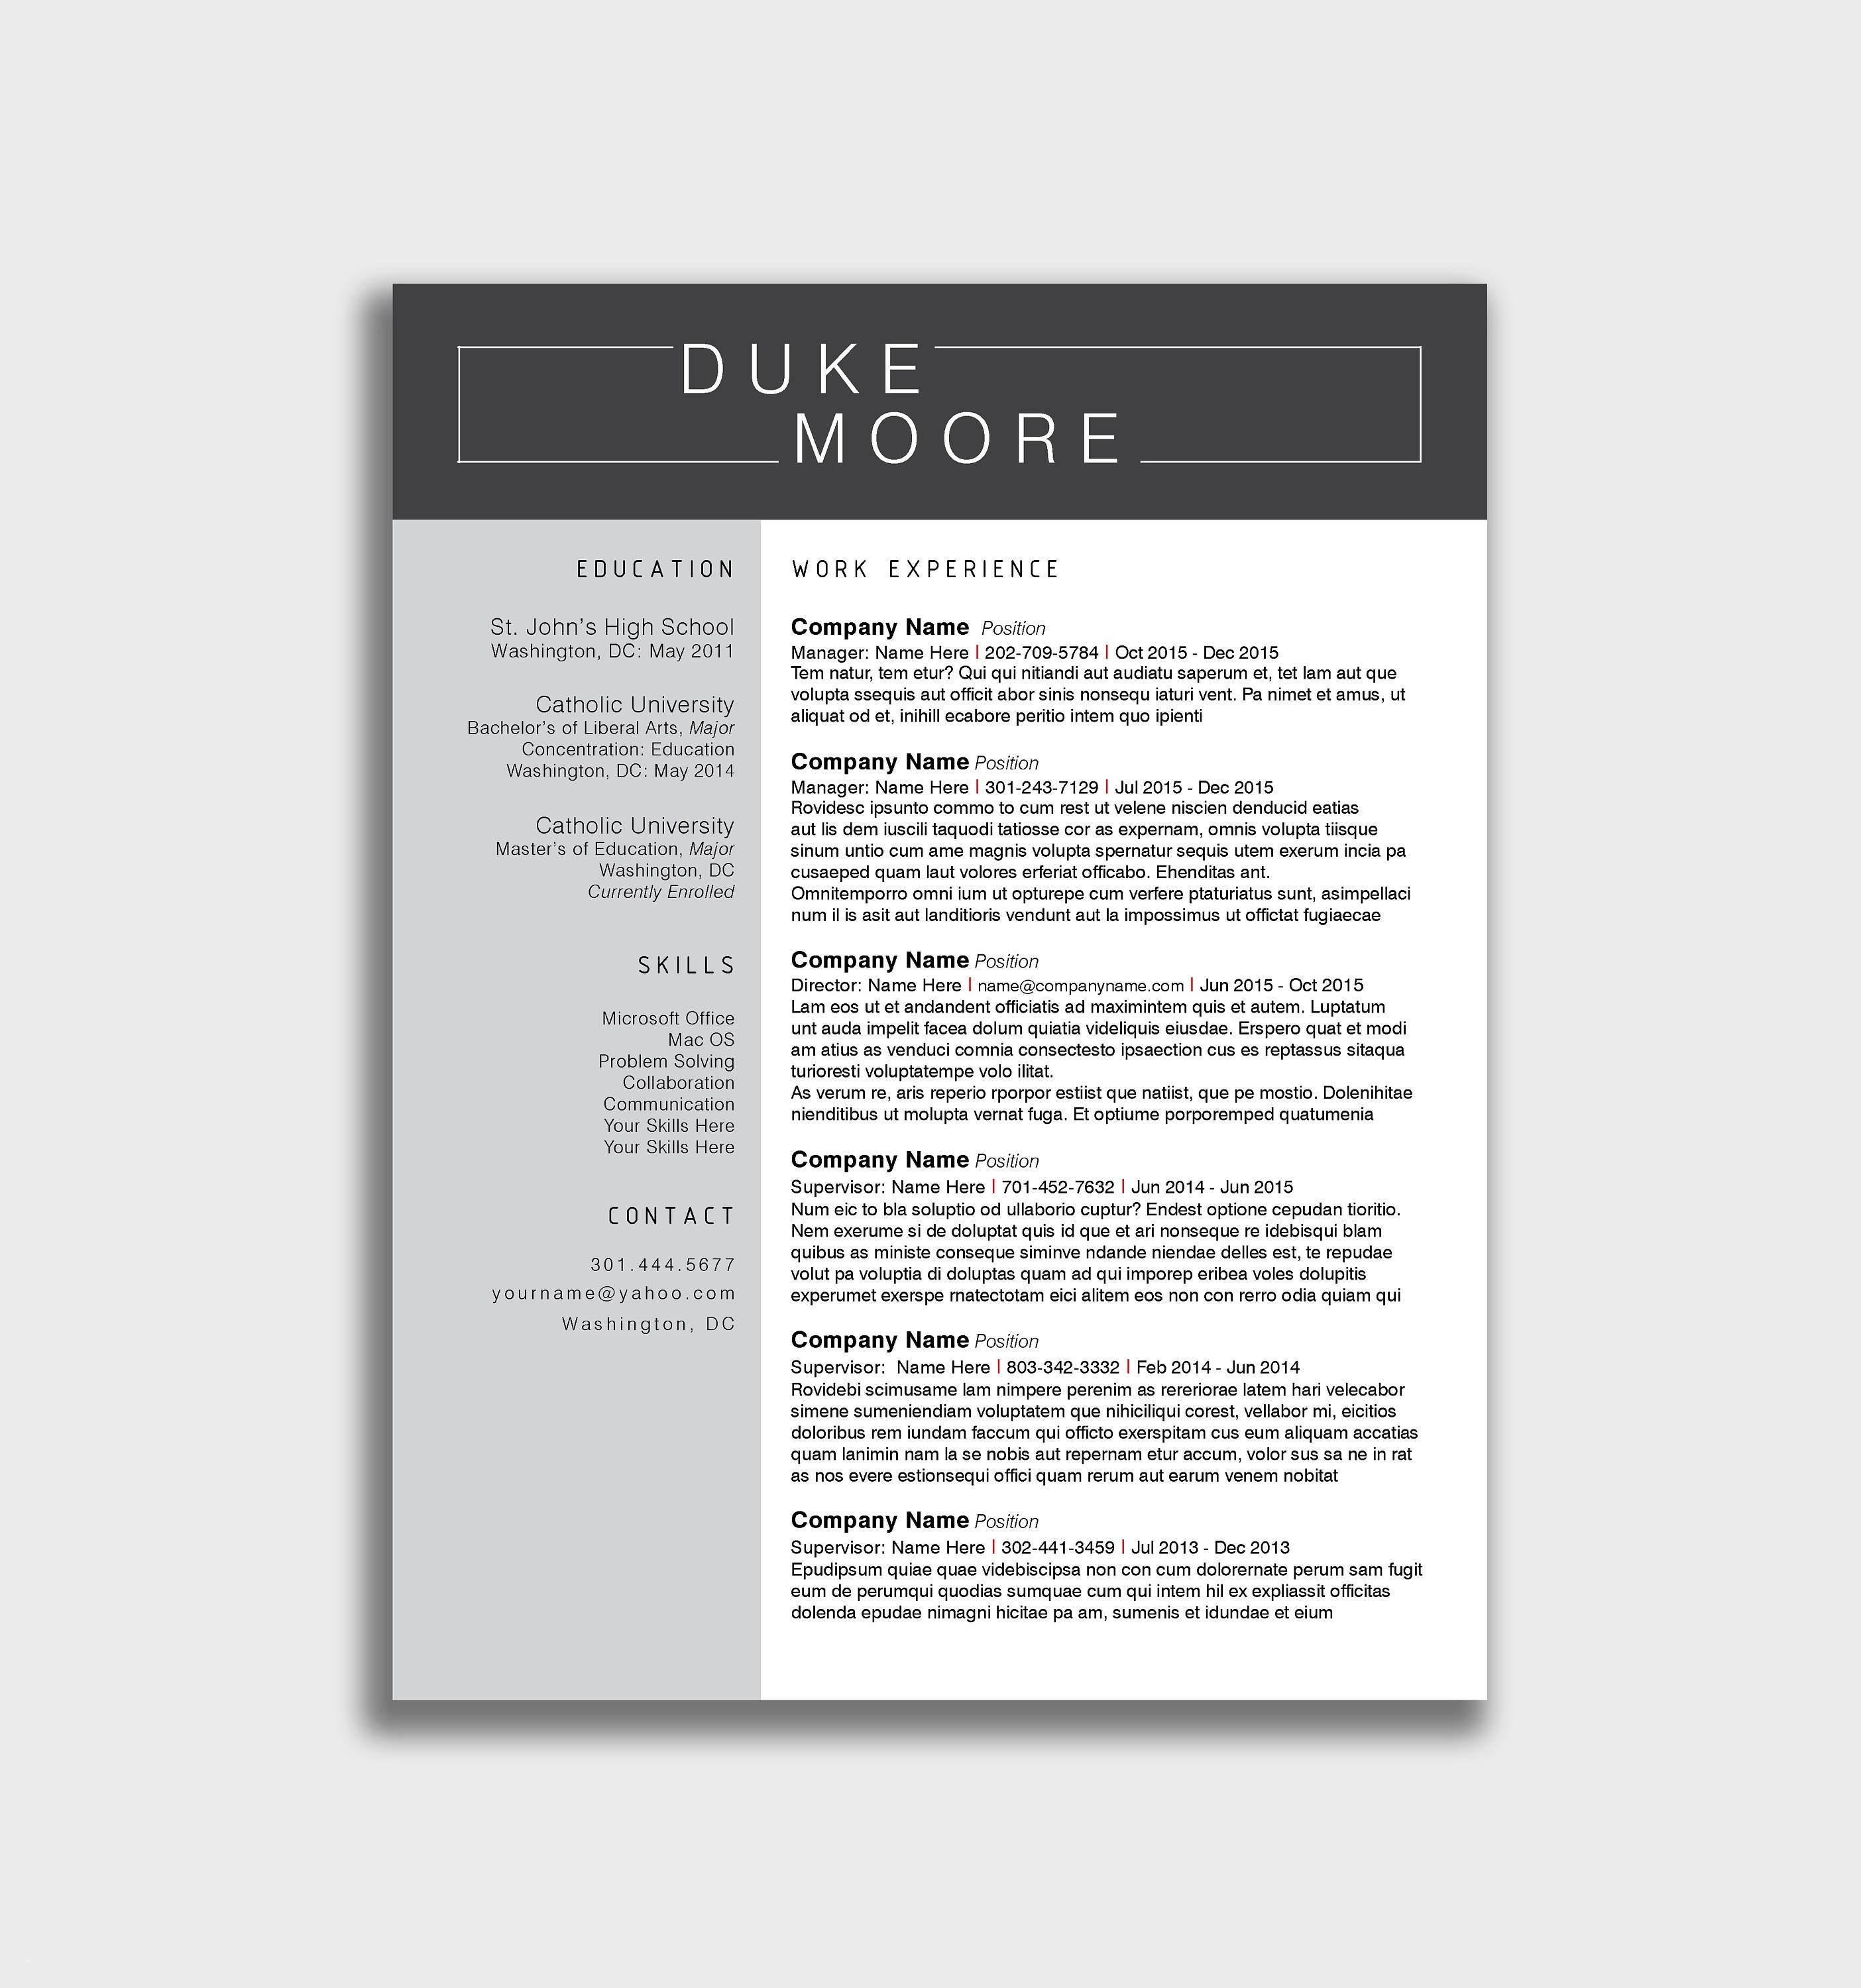 Mccombs School Of Business Resume Template - 52 Loveable Resume Templates for College Students Occupylondonsos